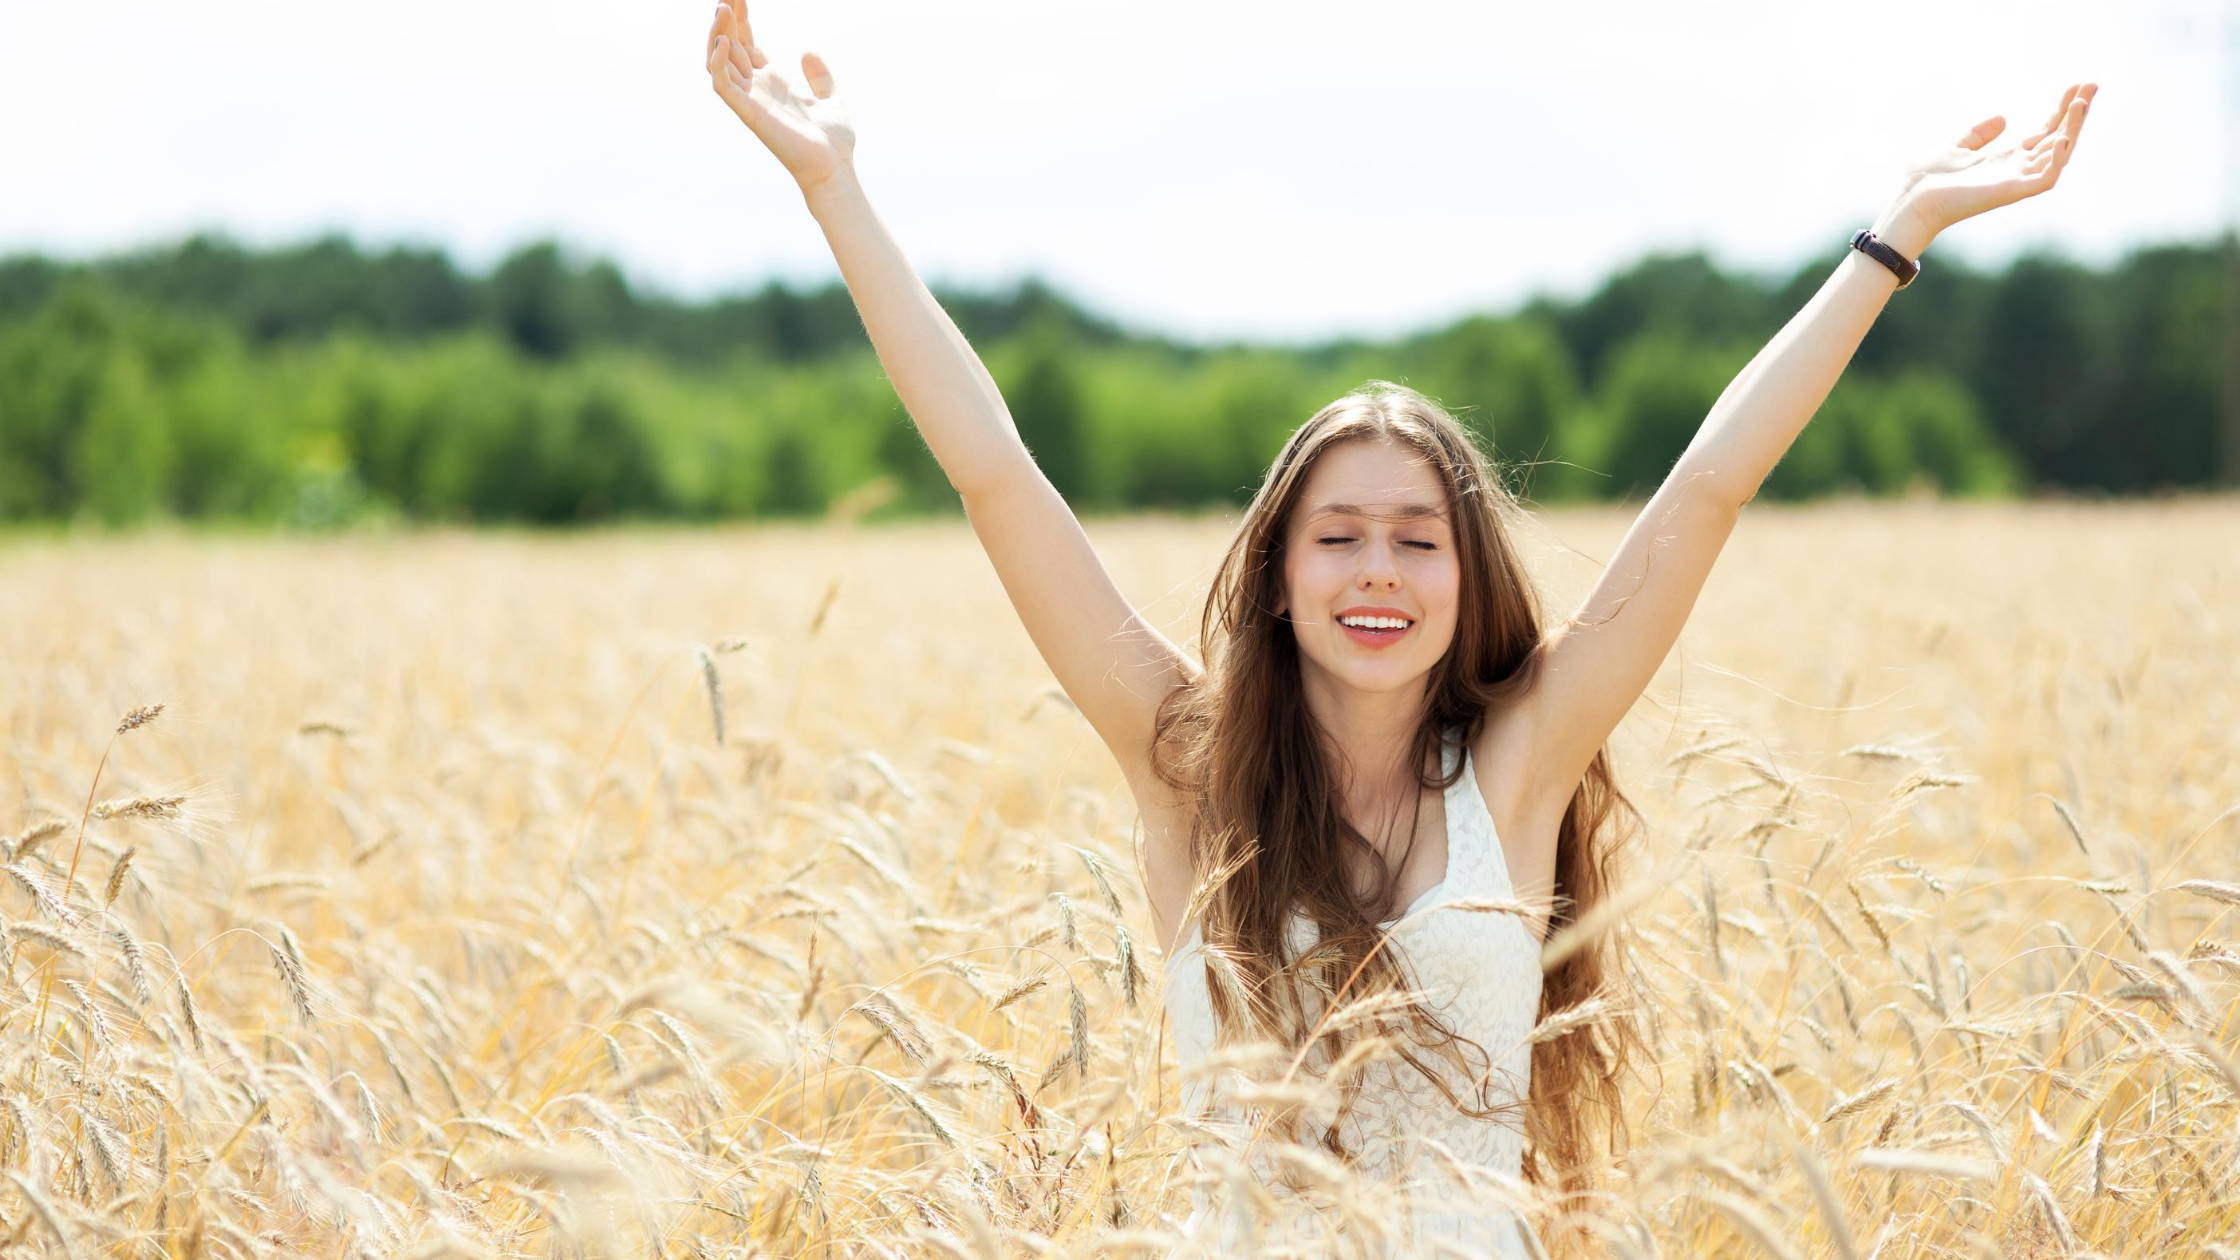 woman in field raising arms up